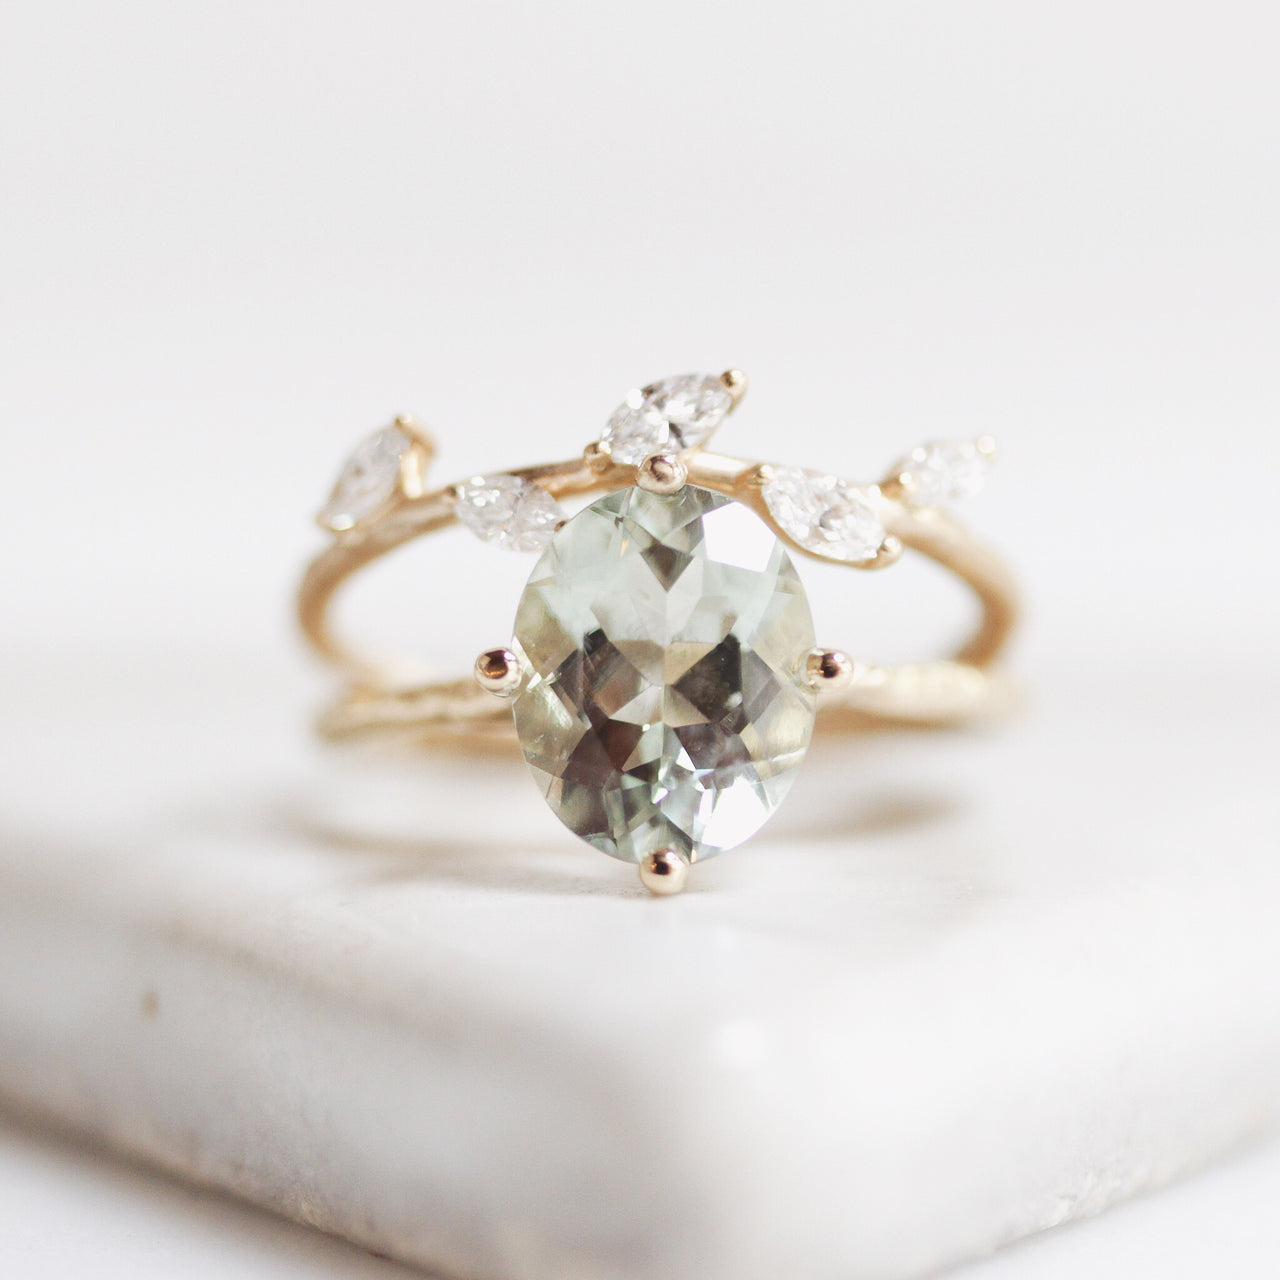 2.5 Carat North/South/East/West Solitaire with Green Amethyst